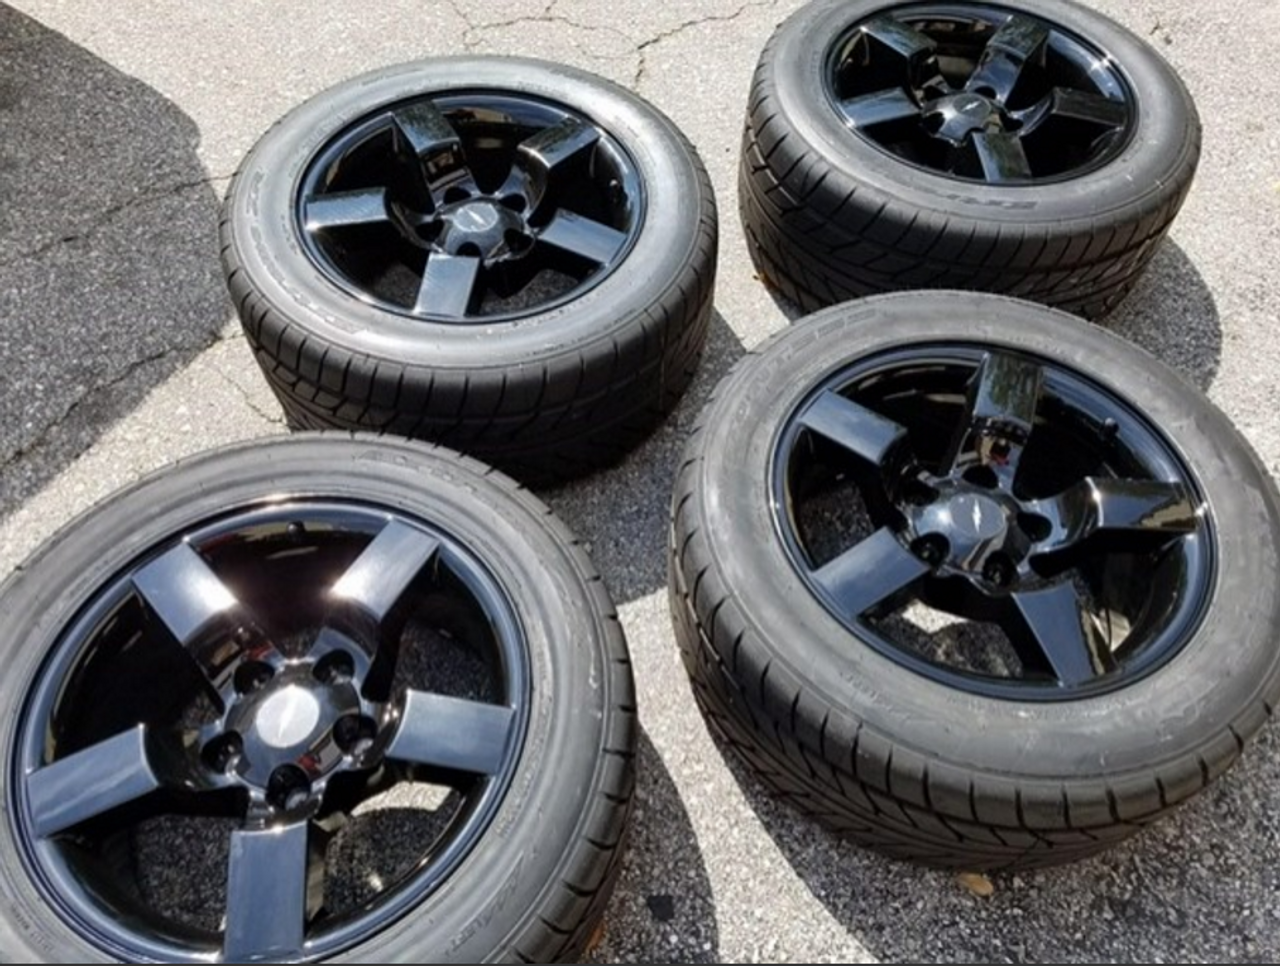 18 Ford Lightning Wheels With Tires F150 Svt Style Gloss Black Set Of 4 18x9